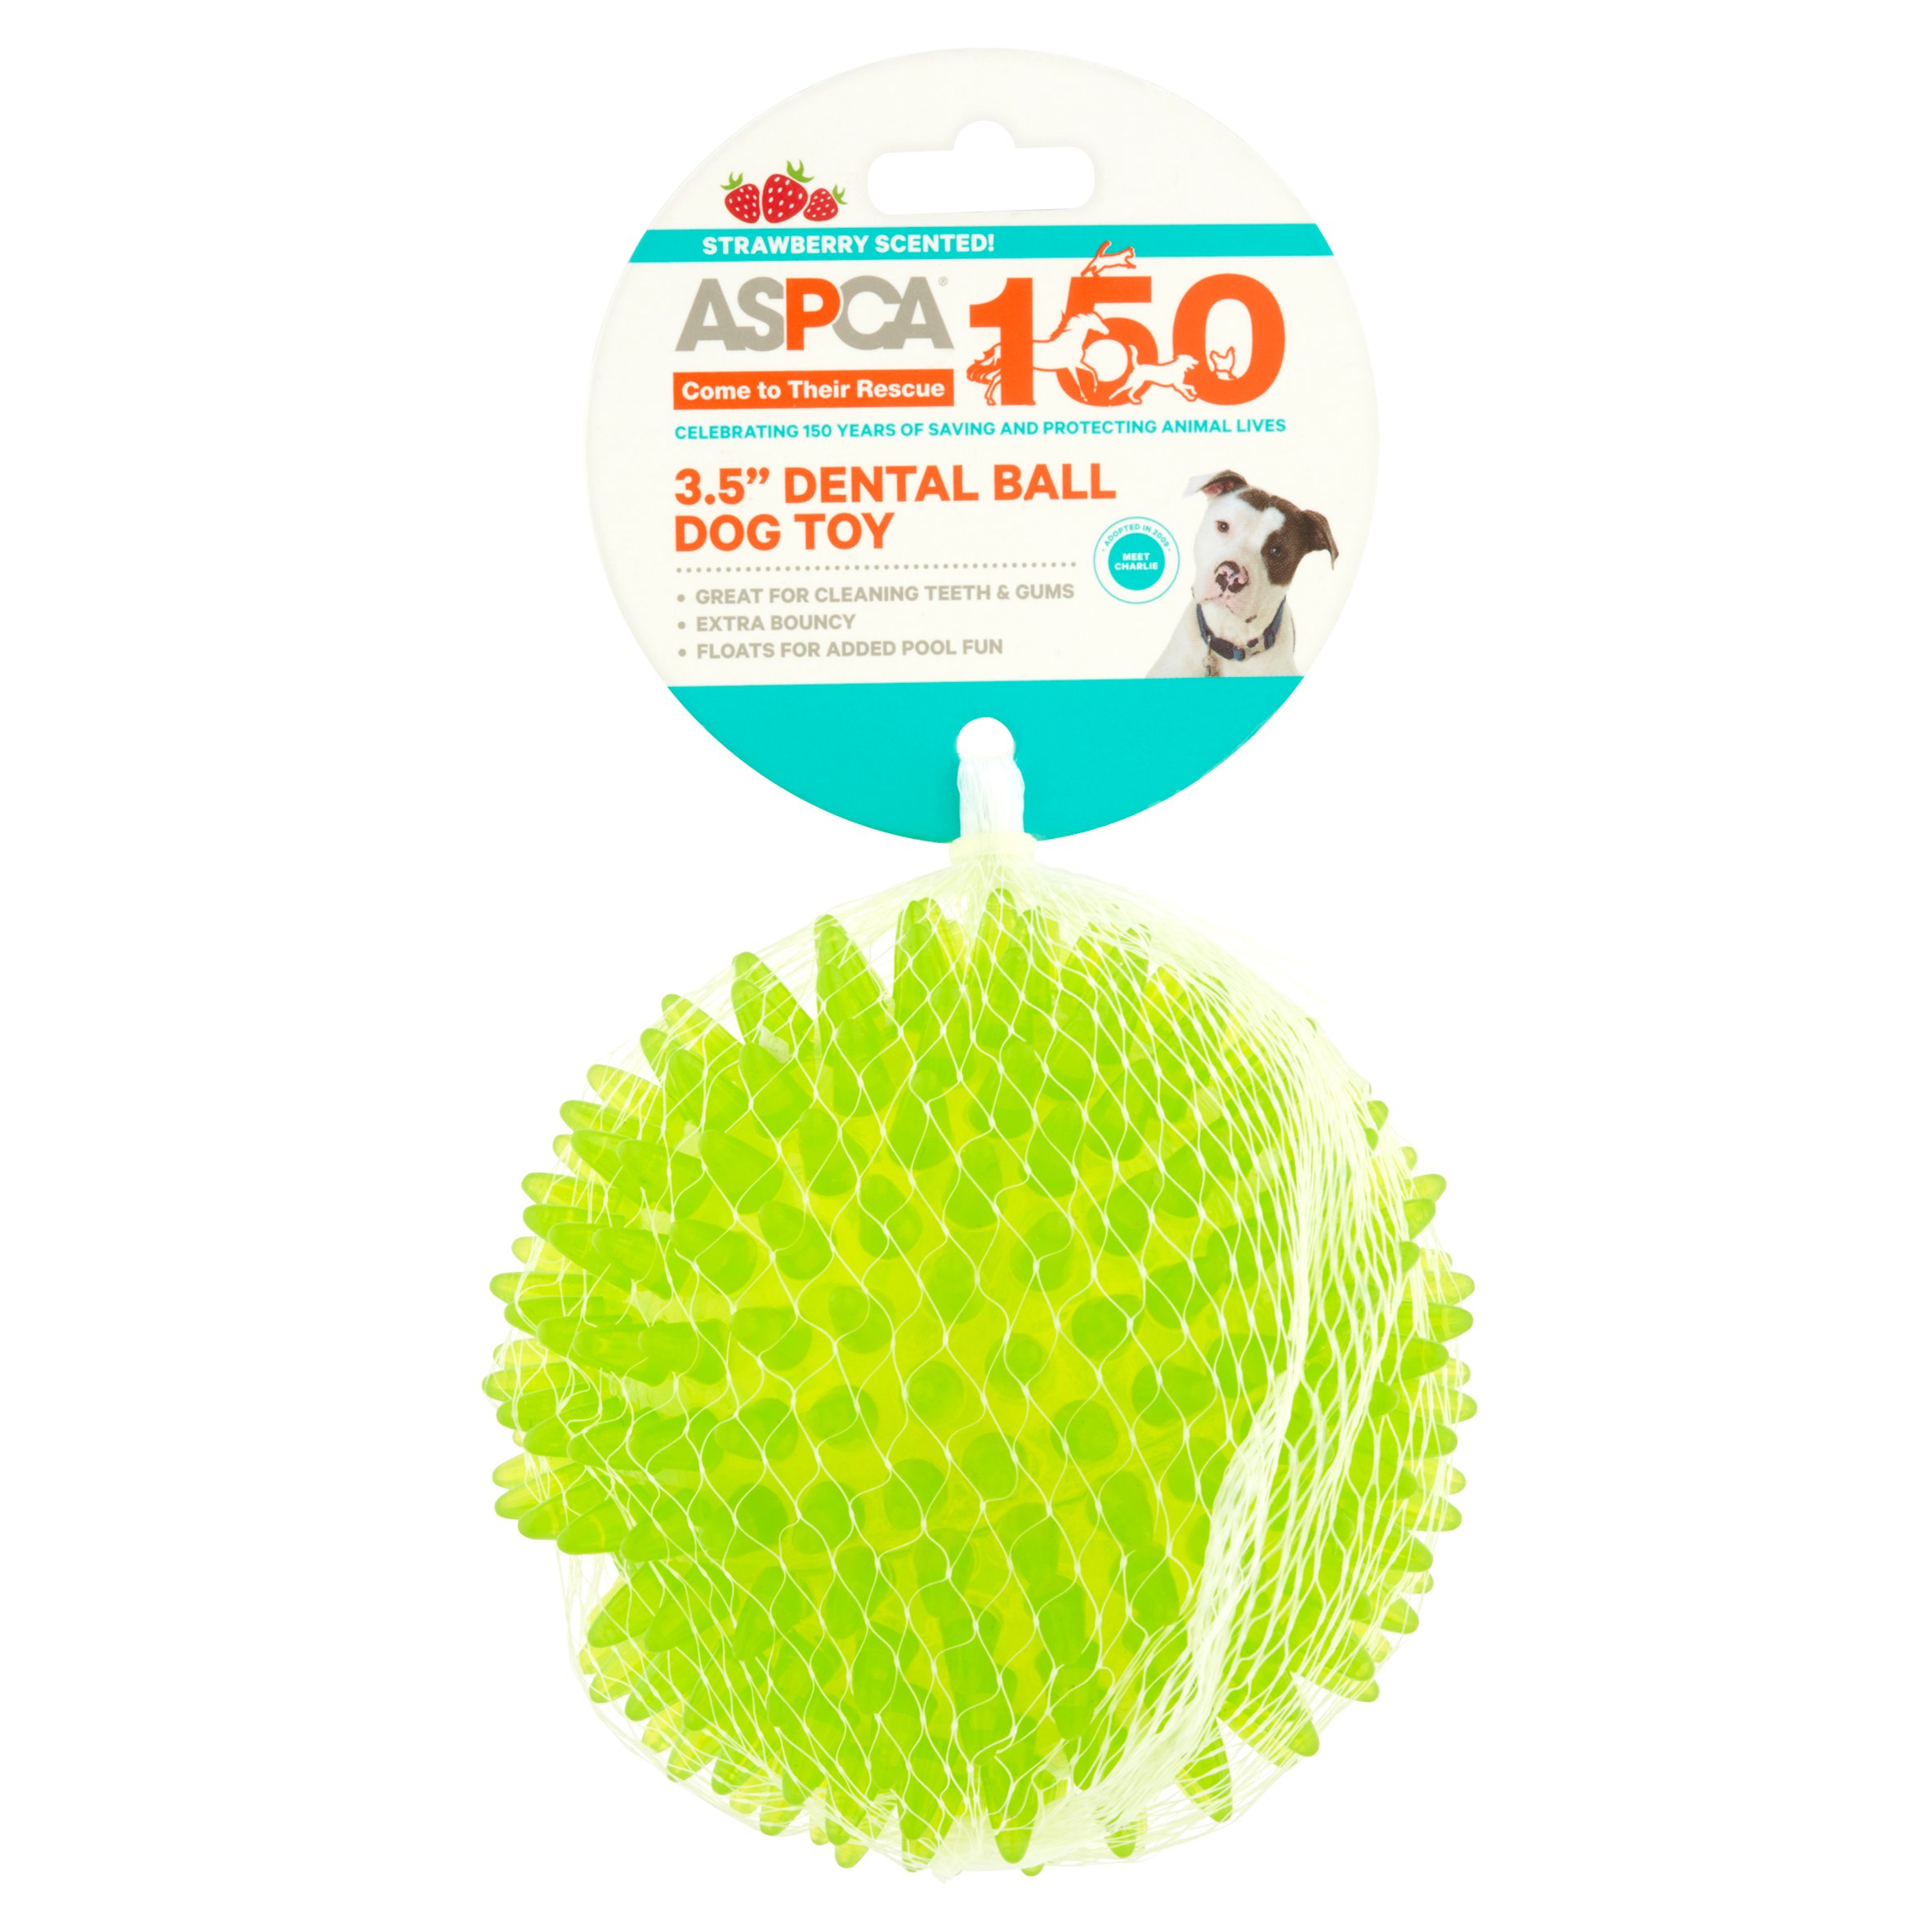 "ASPCA 3.5"" Dental Ball Dog Toy"